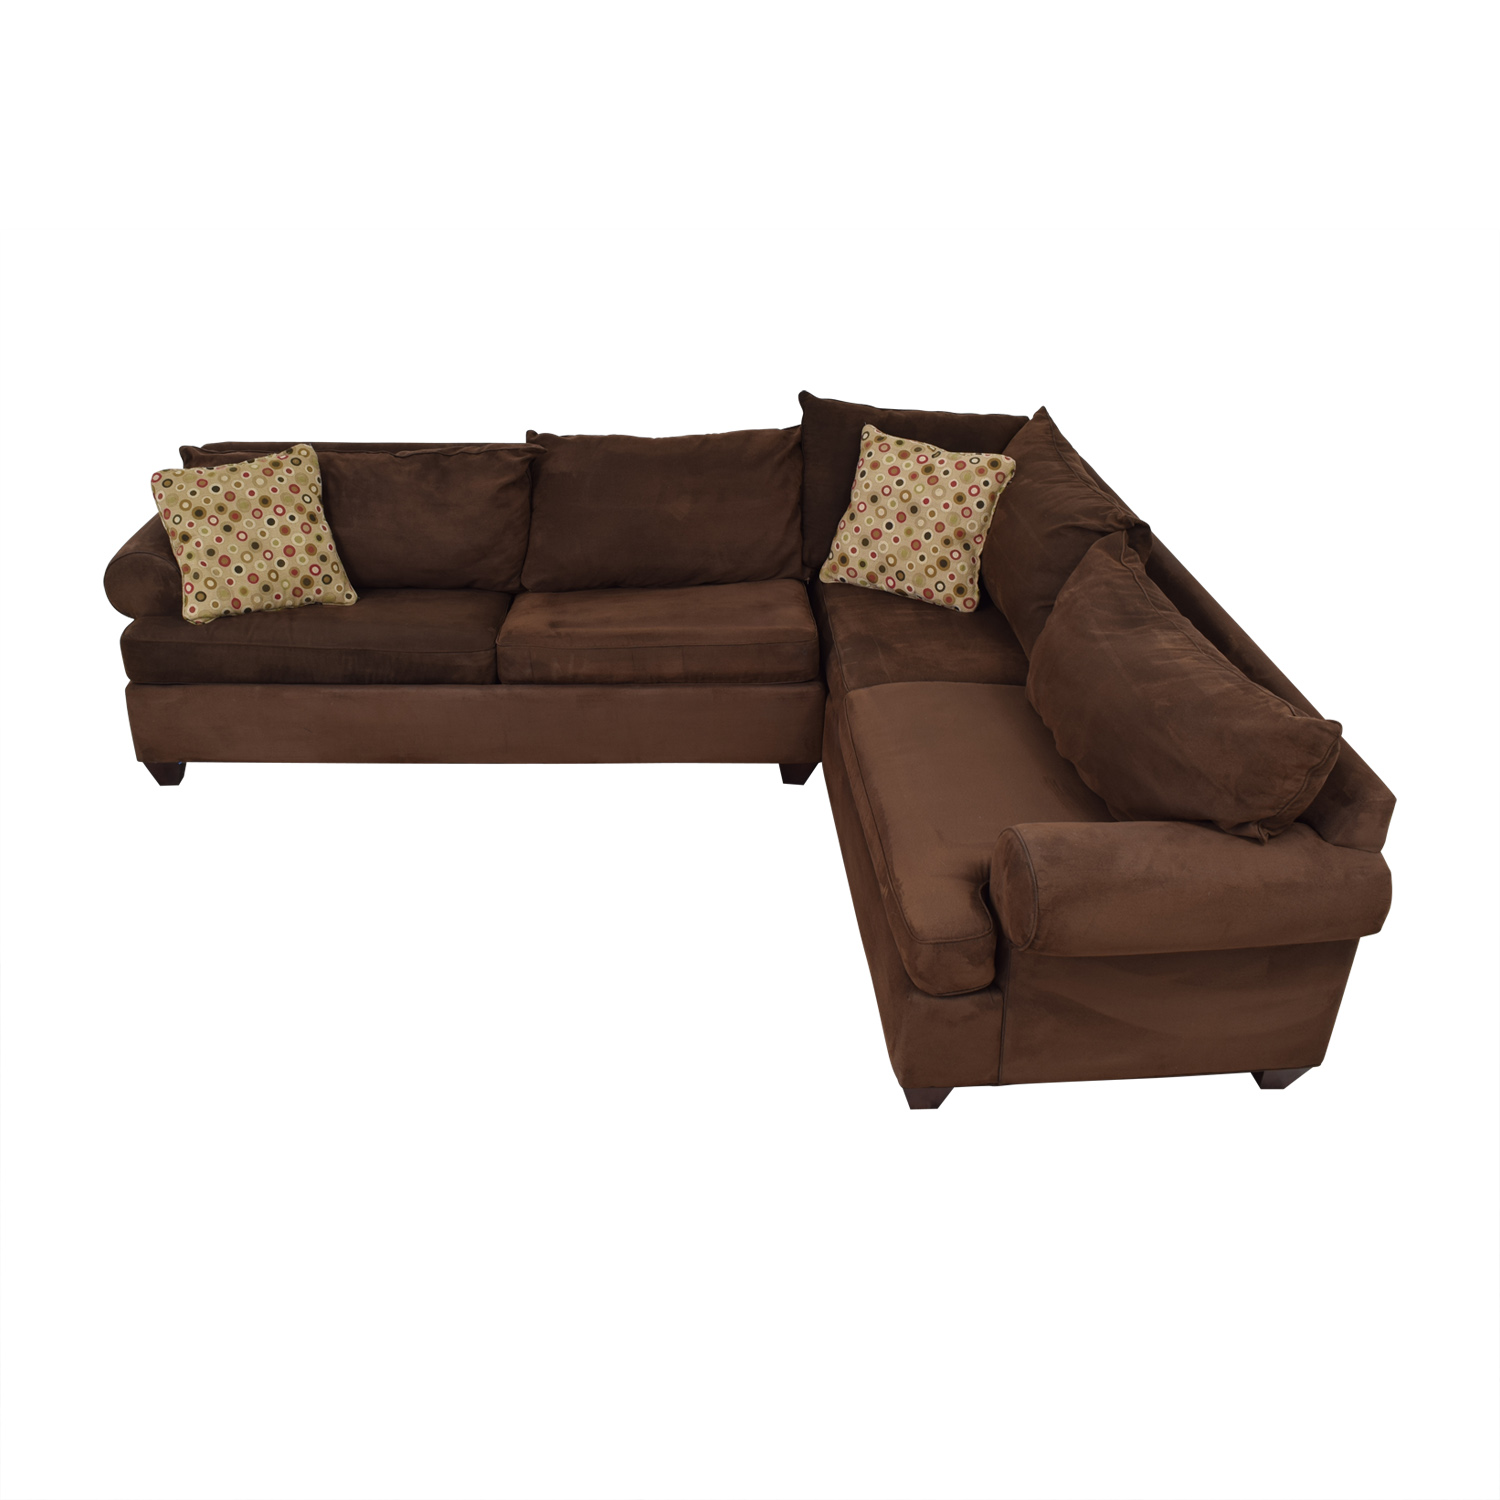 shop Raymour & Flanigan Brown L-Shaped Sectional With Pull-Out Convertible Bed Raymour & Flanigan Sectionals